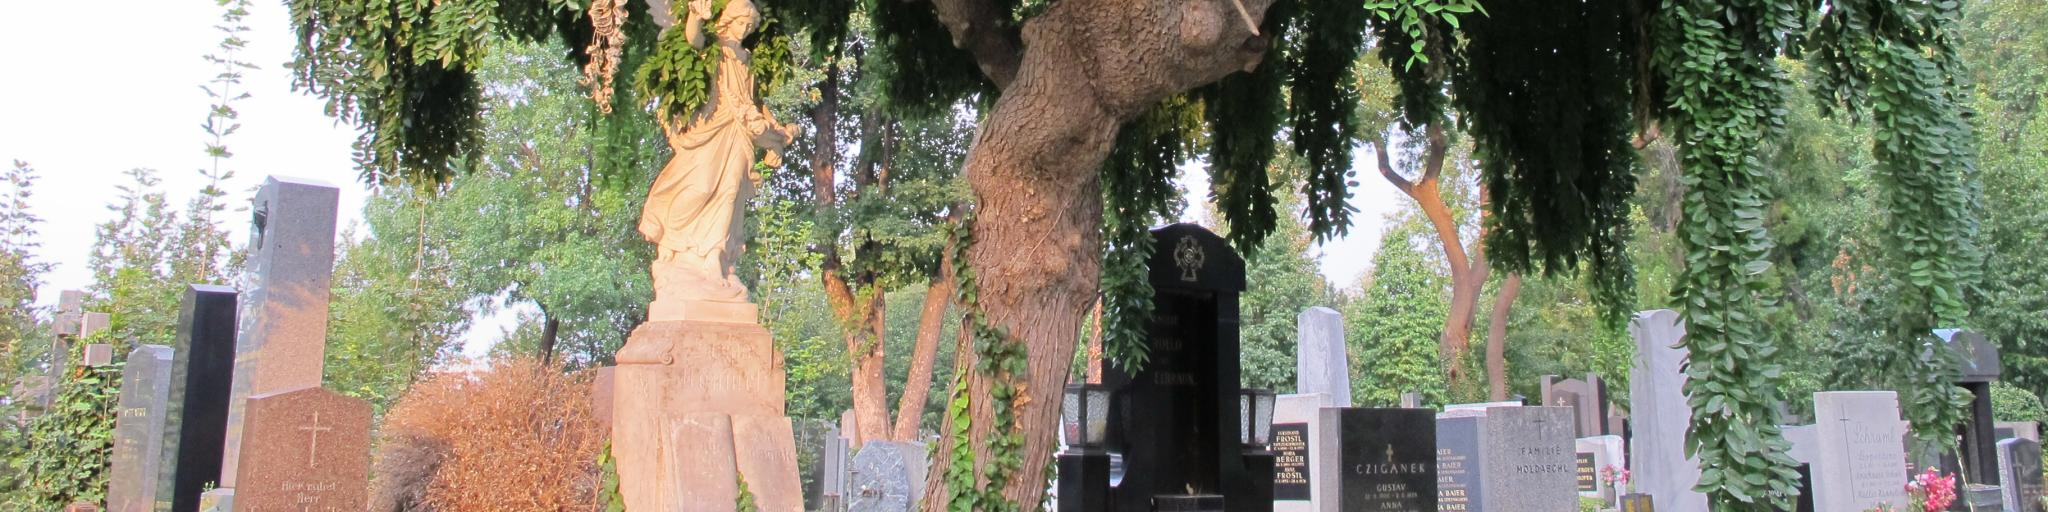 A tree towers over the headstones of Vienna Central Cemetery